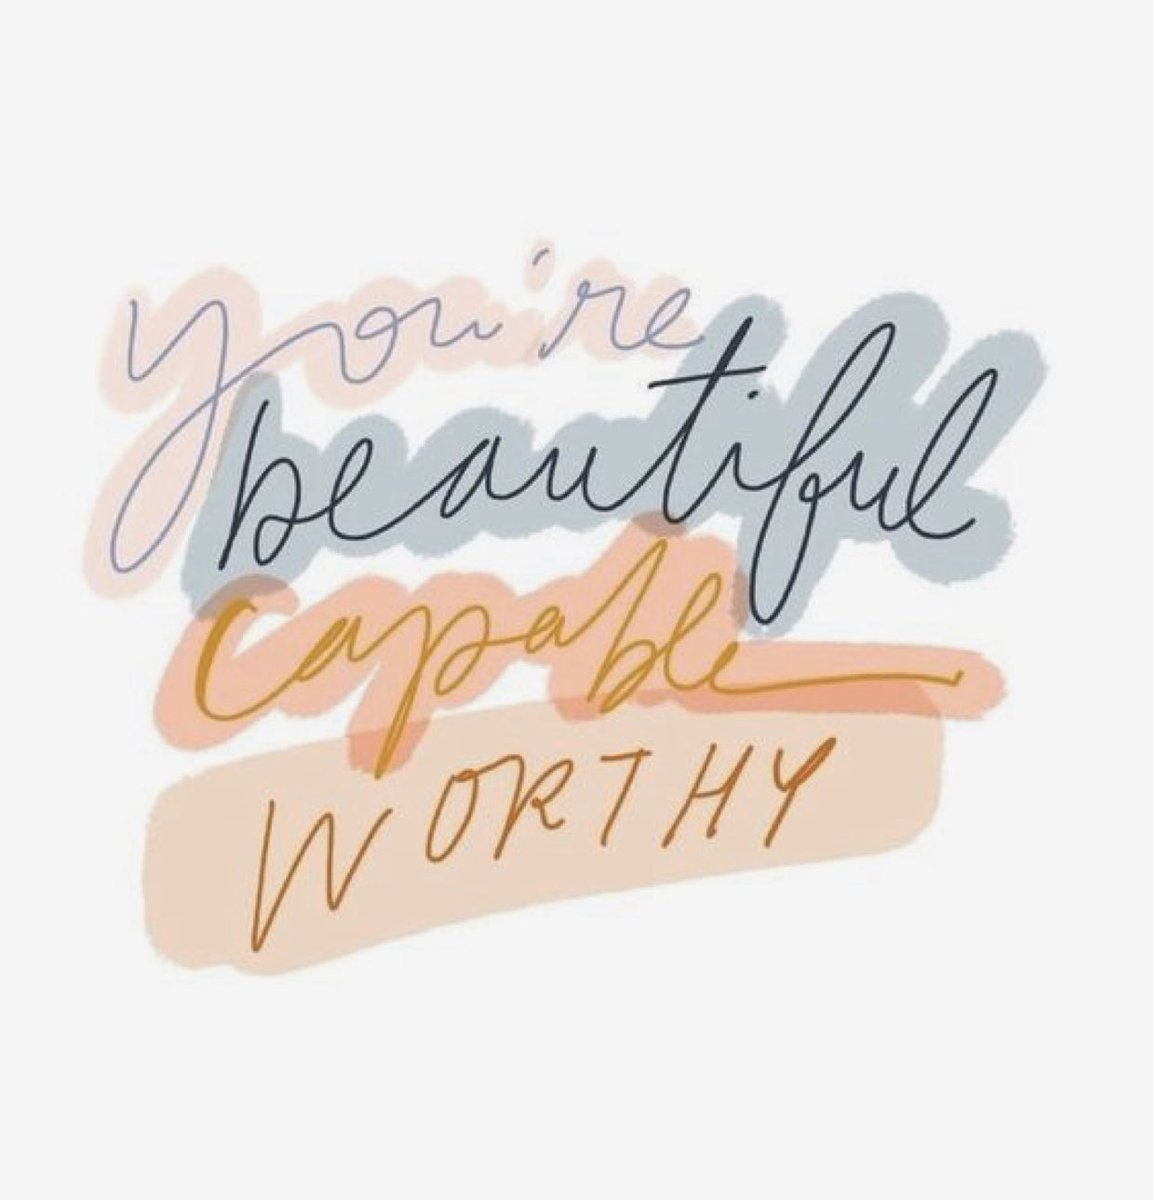 ✨BEAUTIFUL • CAPABLE • WORTHY✨ #babessupportingbabes #girls #girlpower #beautiful #capable #worthy #motivation #keepgoing #bossbabe #babesofinsta